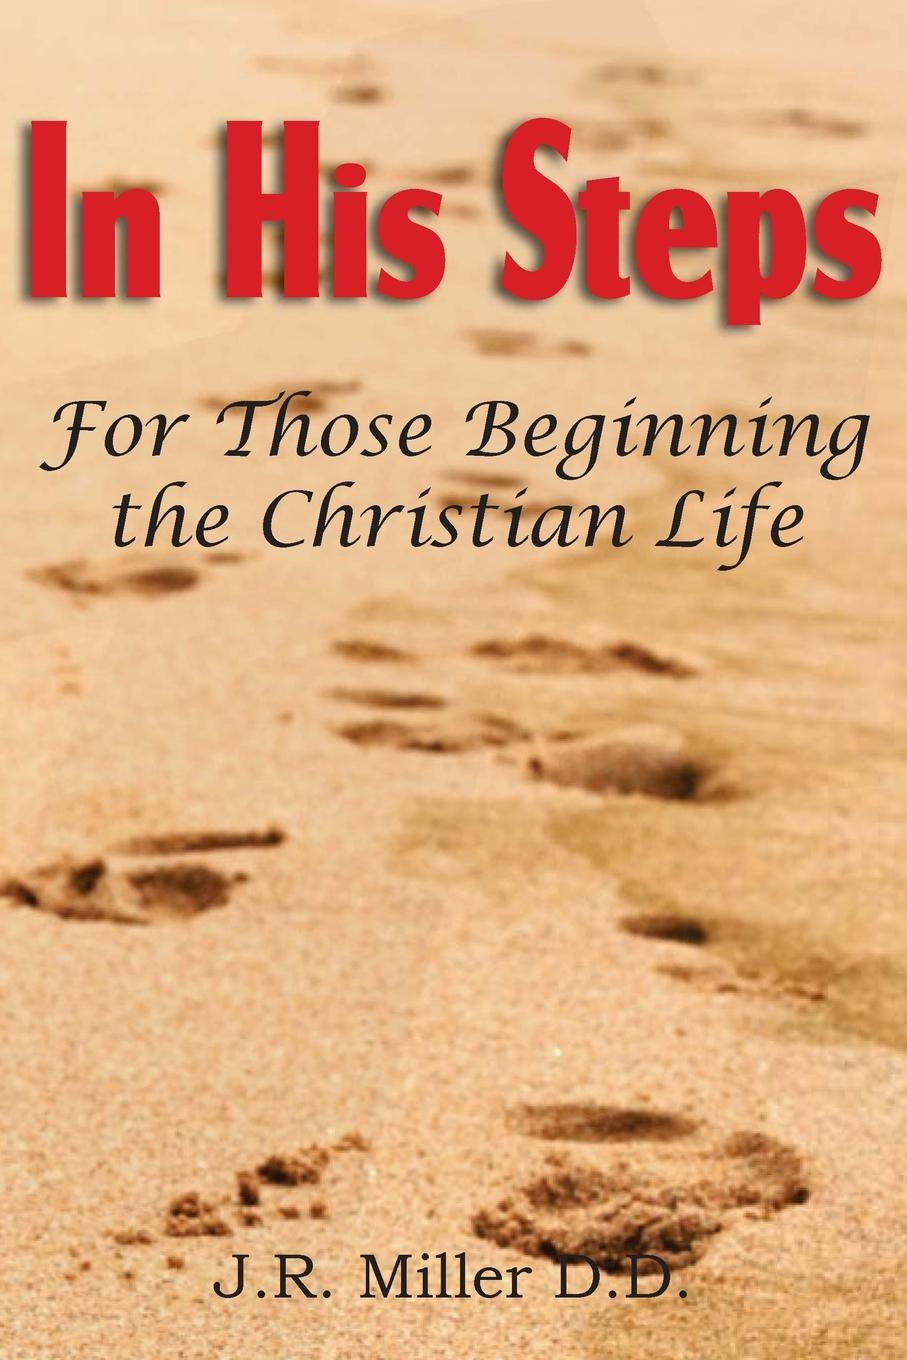 J. R. Miller In His Steps, for Those Beginning the Christian Life thayer miller lindaflor l d miller words of faith a christian perspective a critical view of religion society and the destiny of mankind